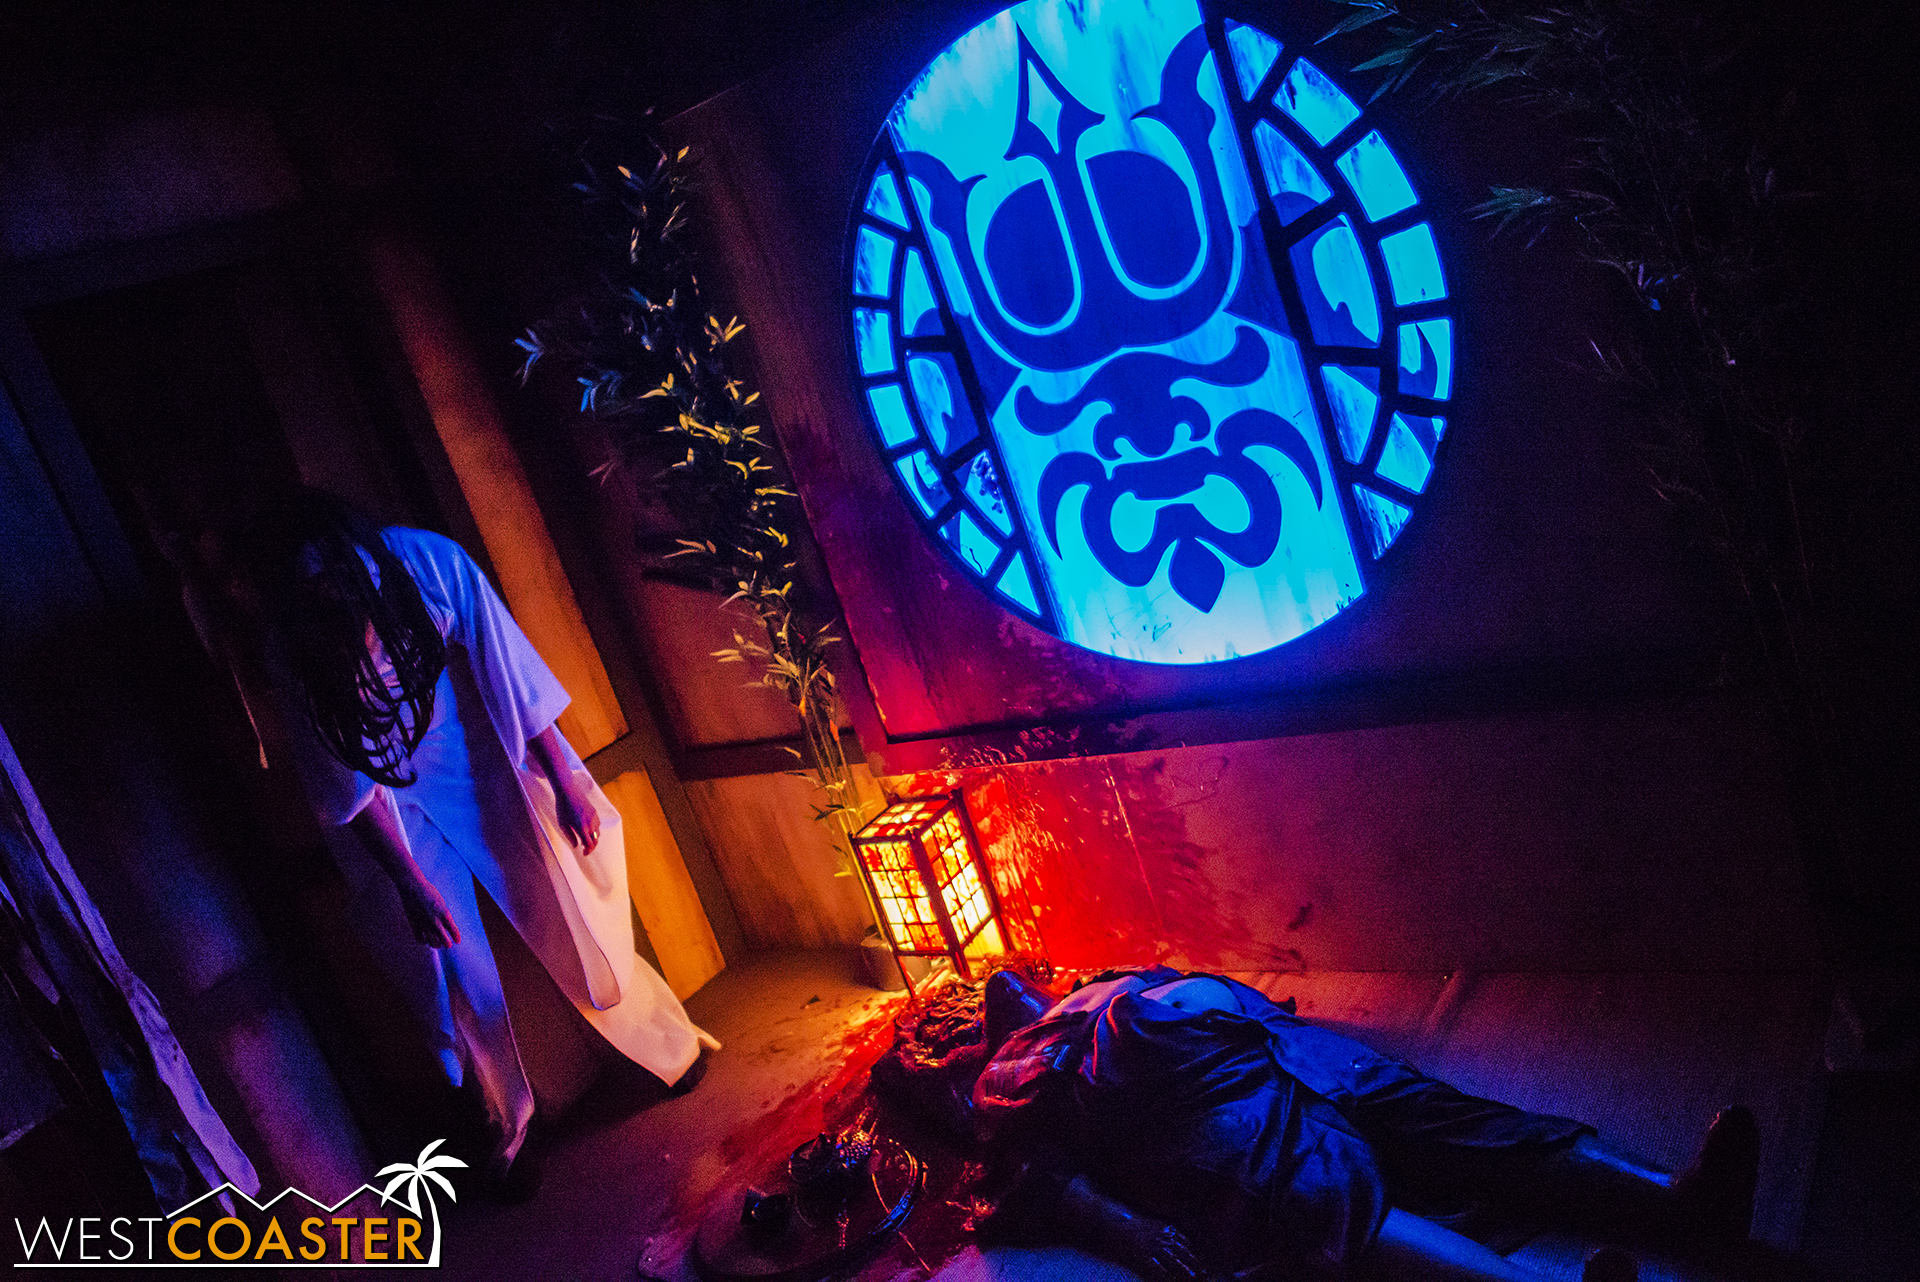 The incredible Shadowlands returns to Knott's Scary Farm this season.